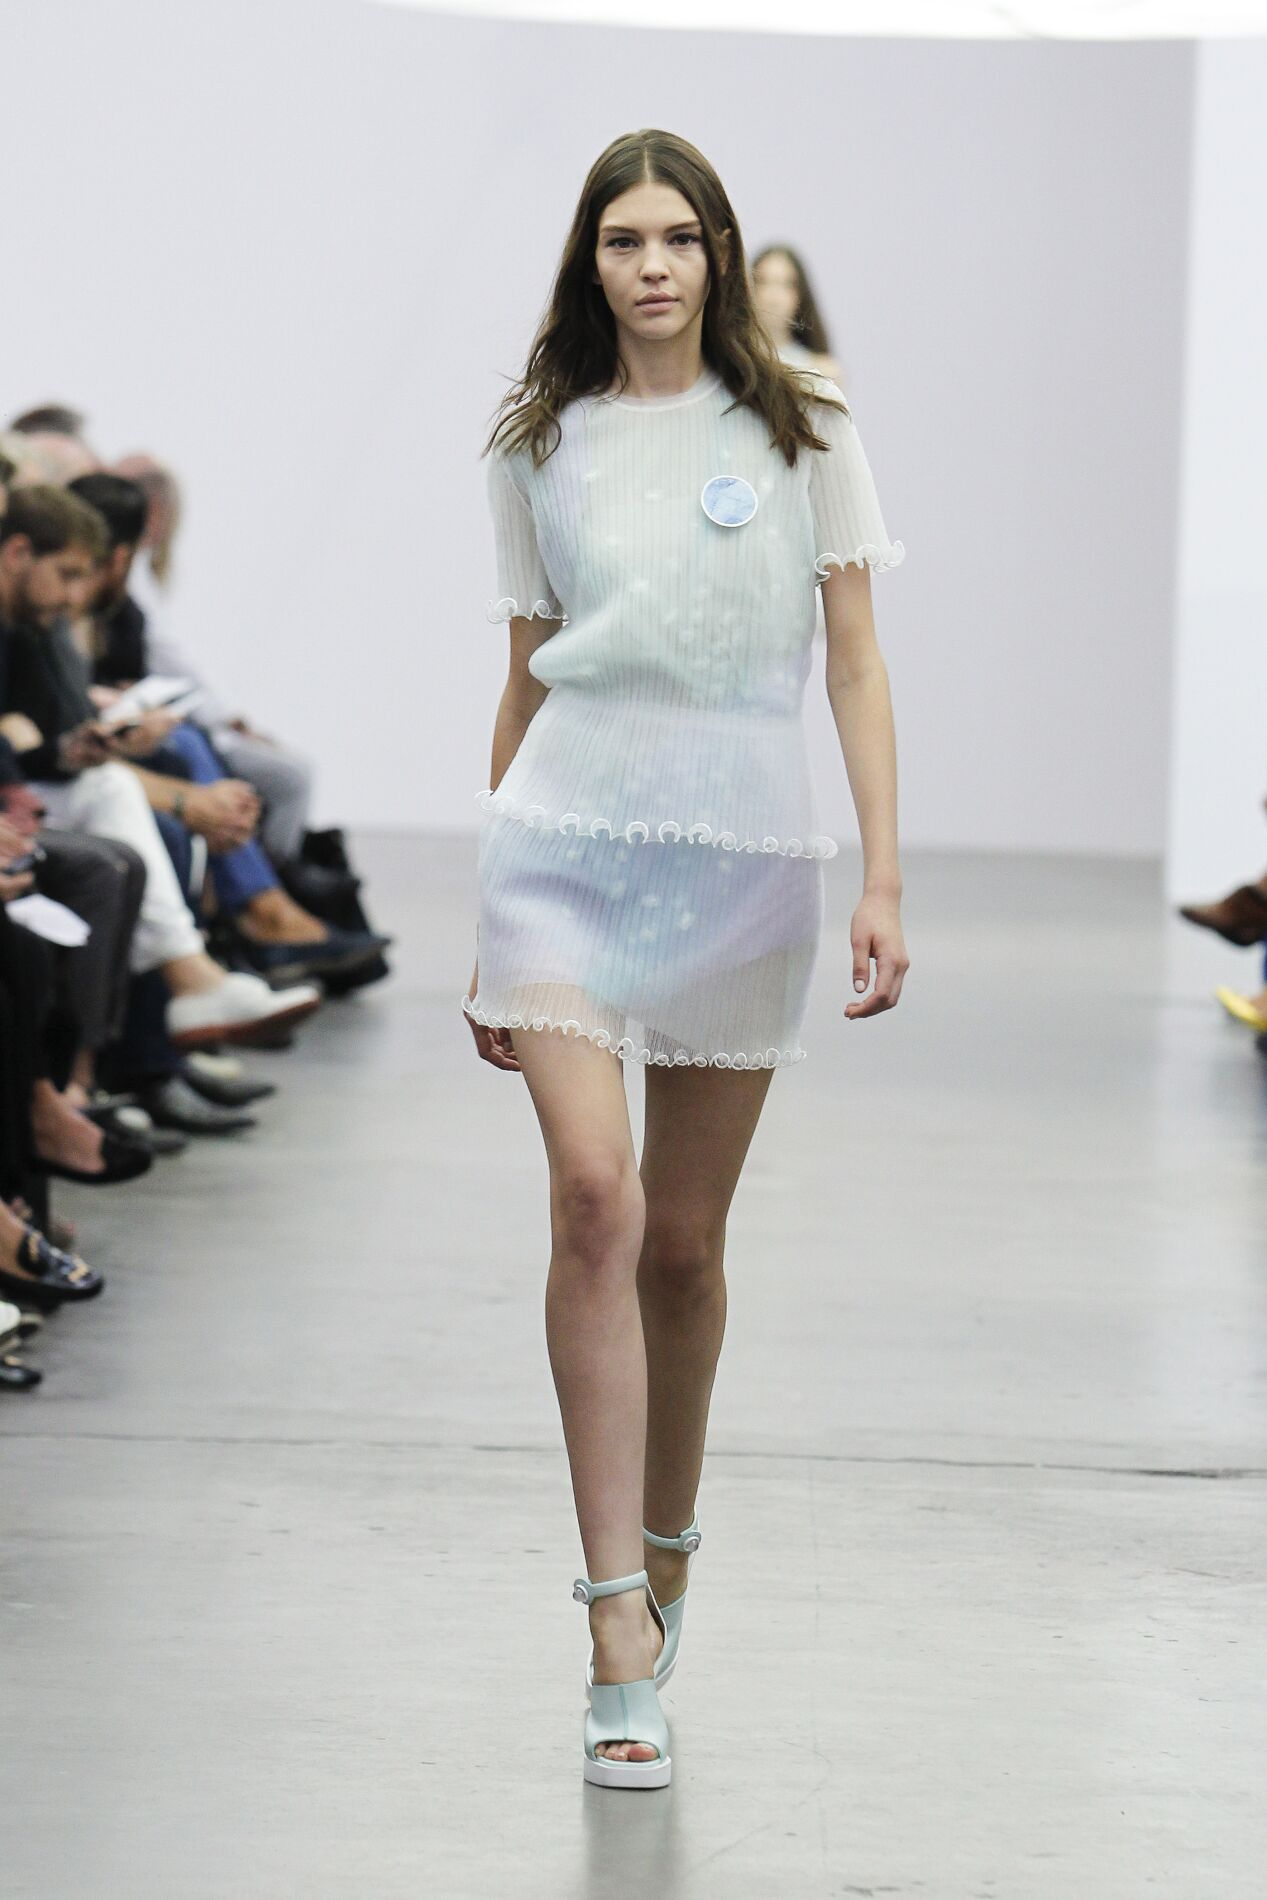 ICEBERG SPRING SUMMER 2014 WOMEN'S COLLECTION